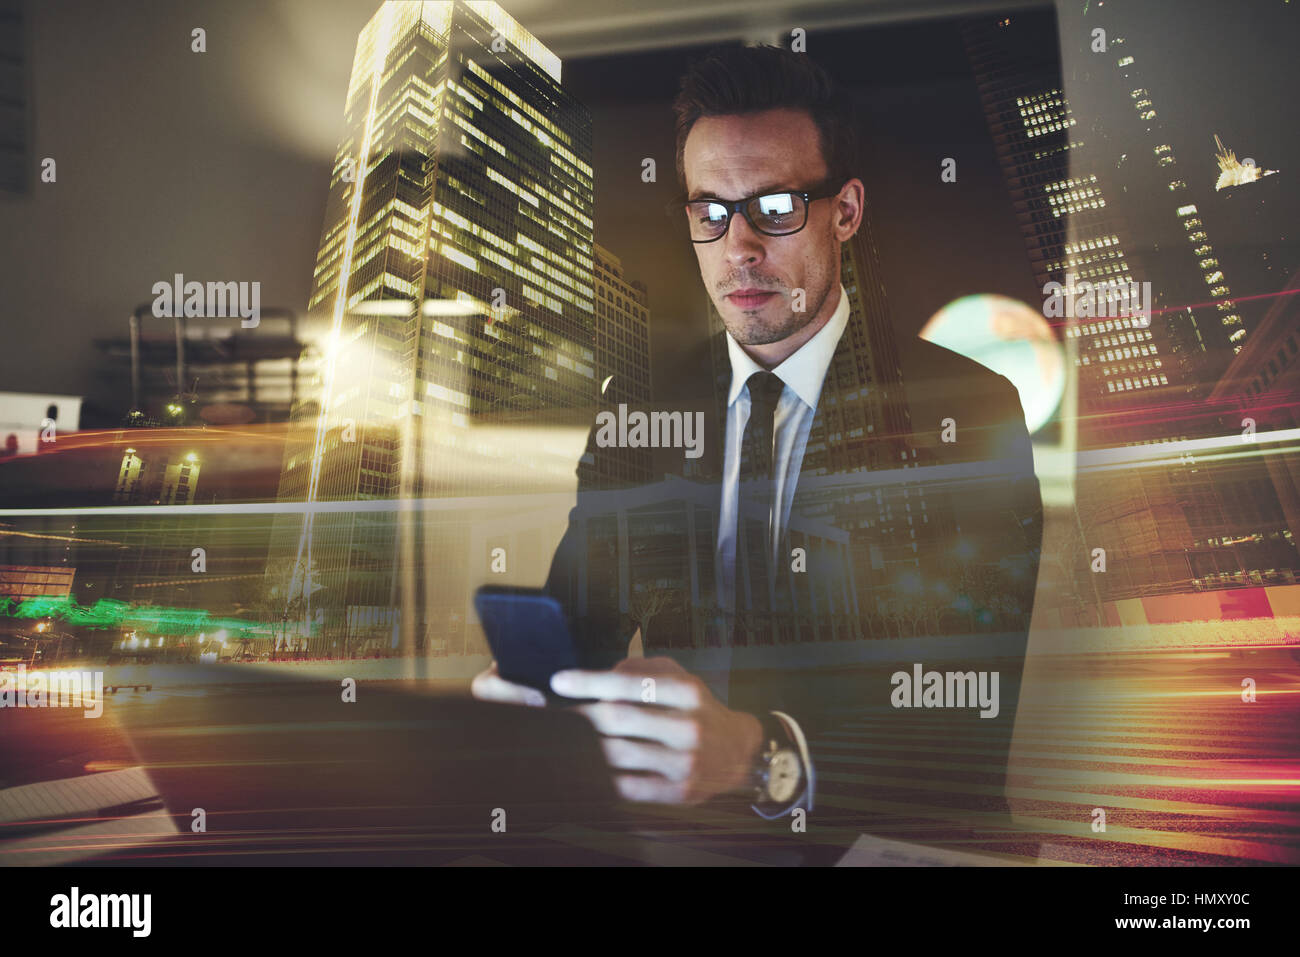 Serious concentrated businessman looking at phone, sitting at office at night, Big City Office Concept - Stock Image